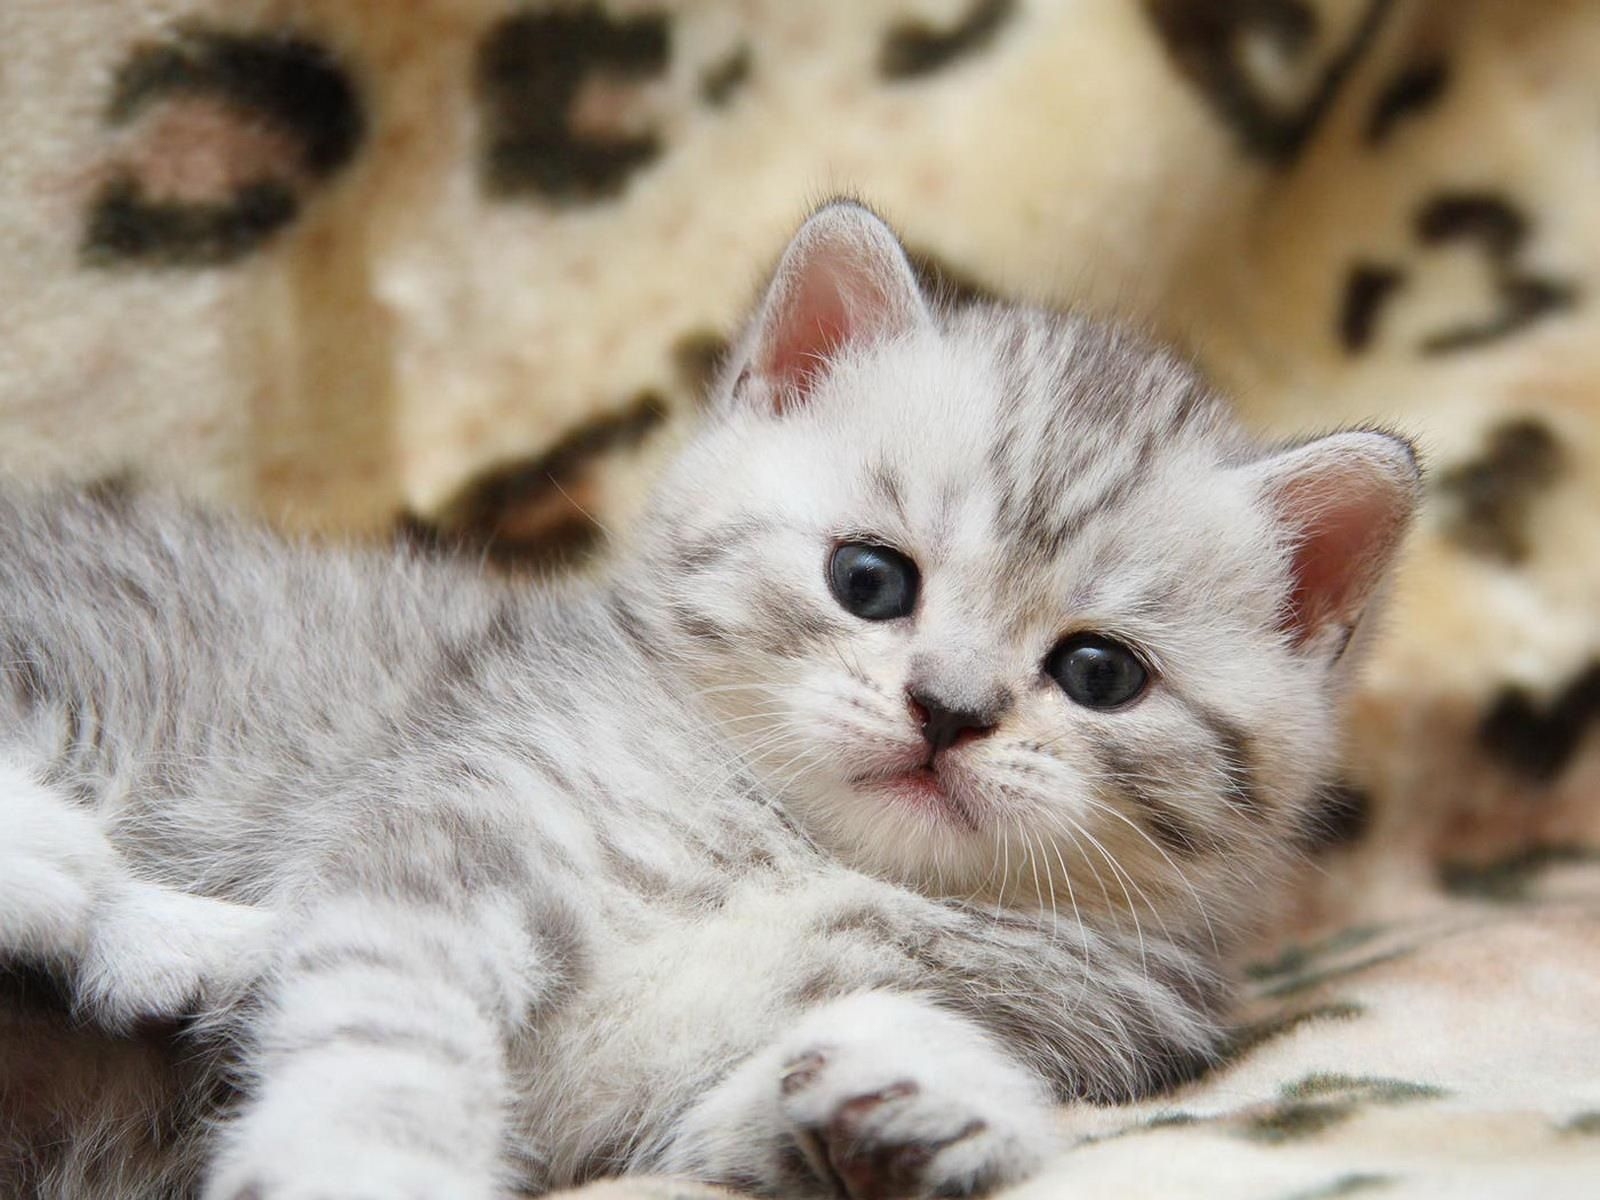 Pin By Talking Smooth Jazz On Favorite Animal Cats Kittens Kittens Cutest Cute Fluffy Kittens Cute Cats